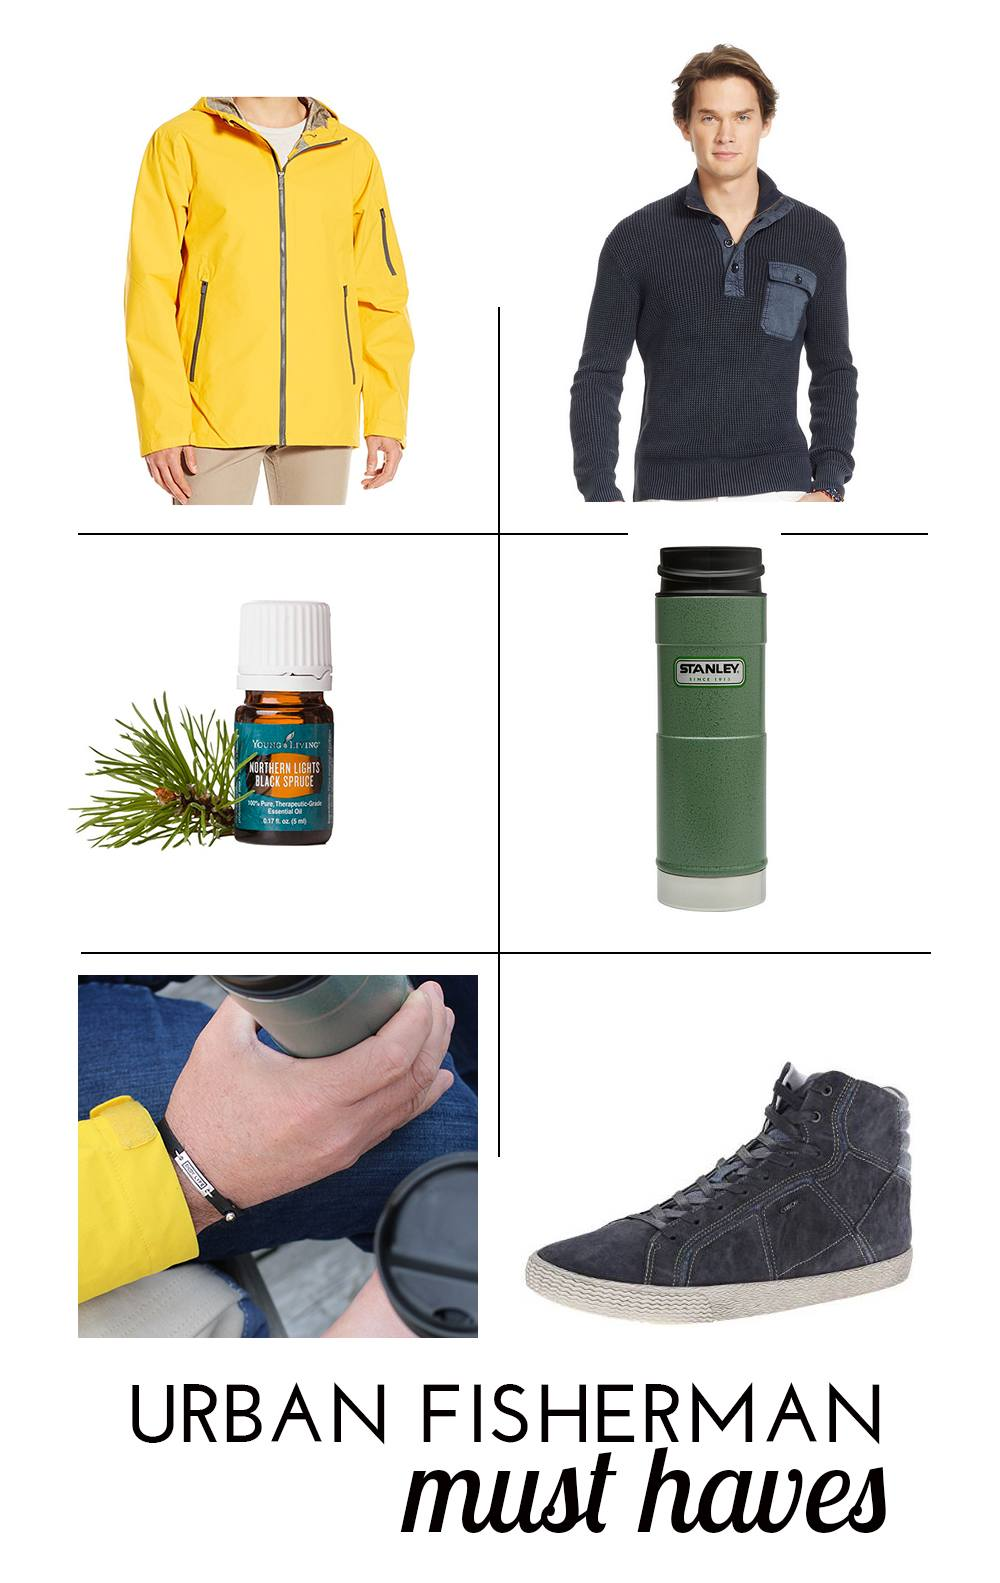 Urban Fisherman trend: must haves to complete the look